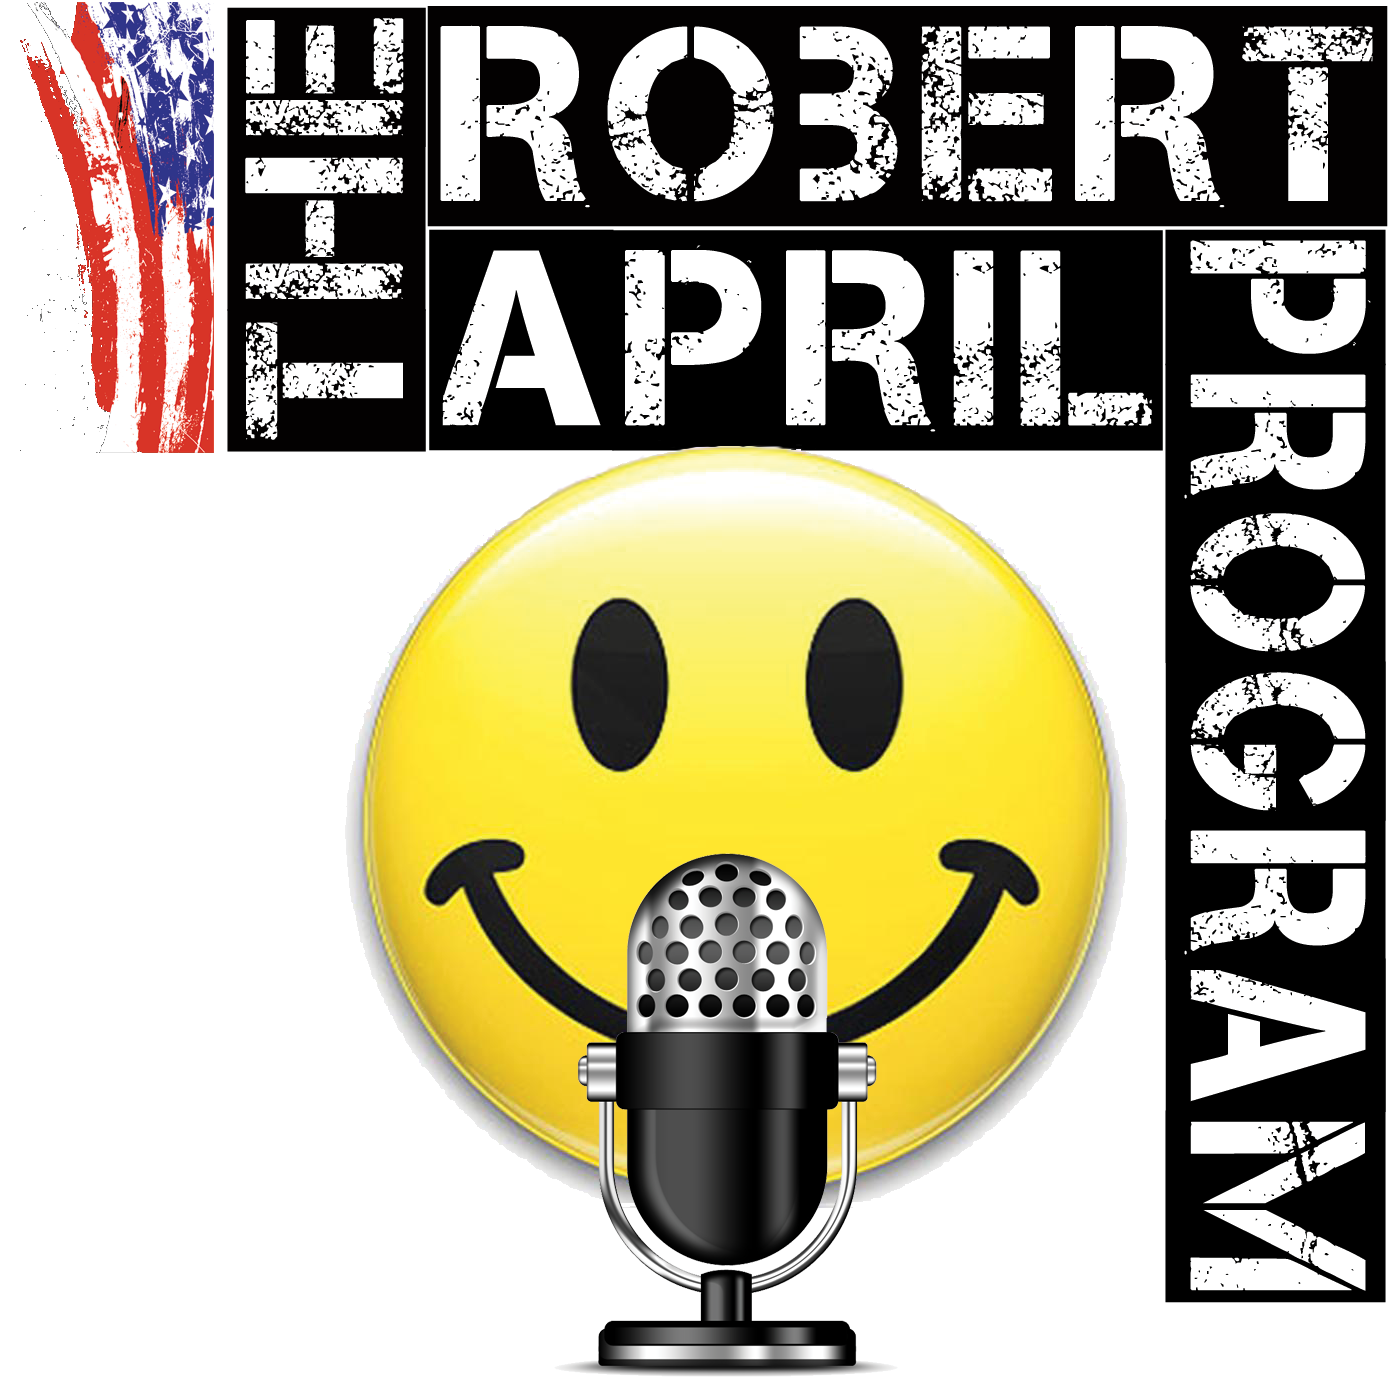 The Robert April Program